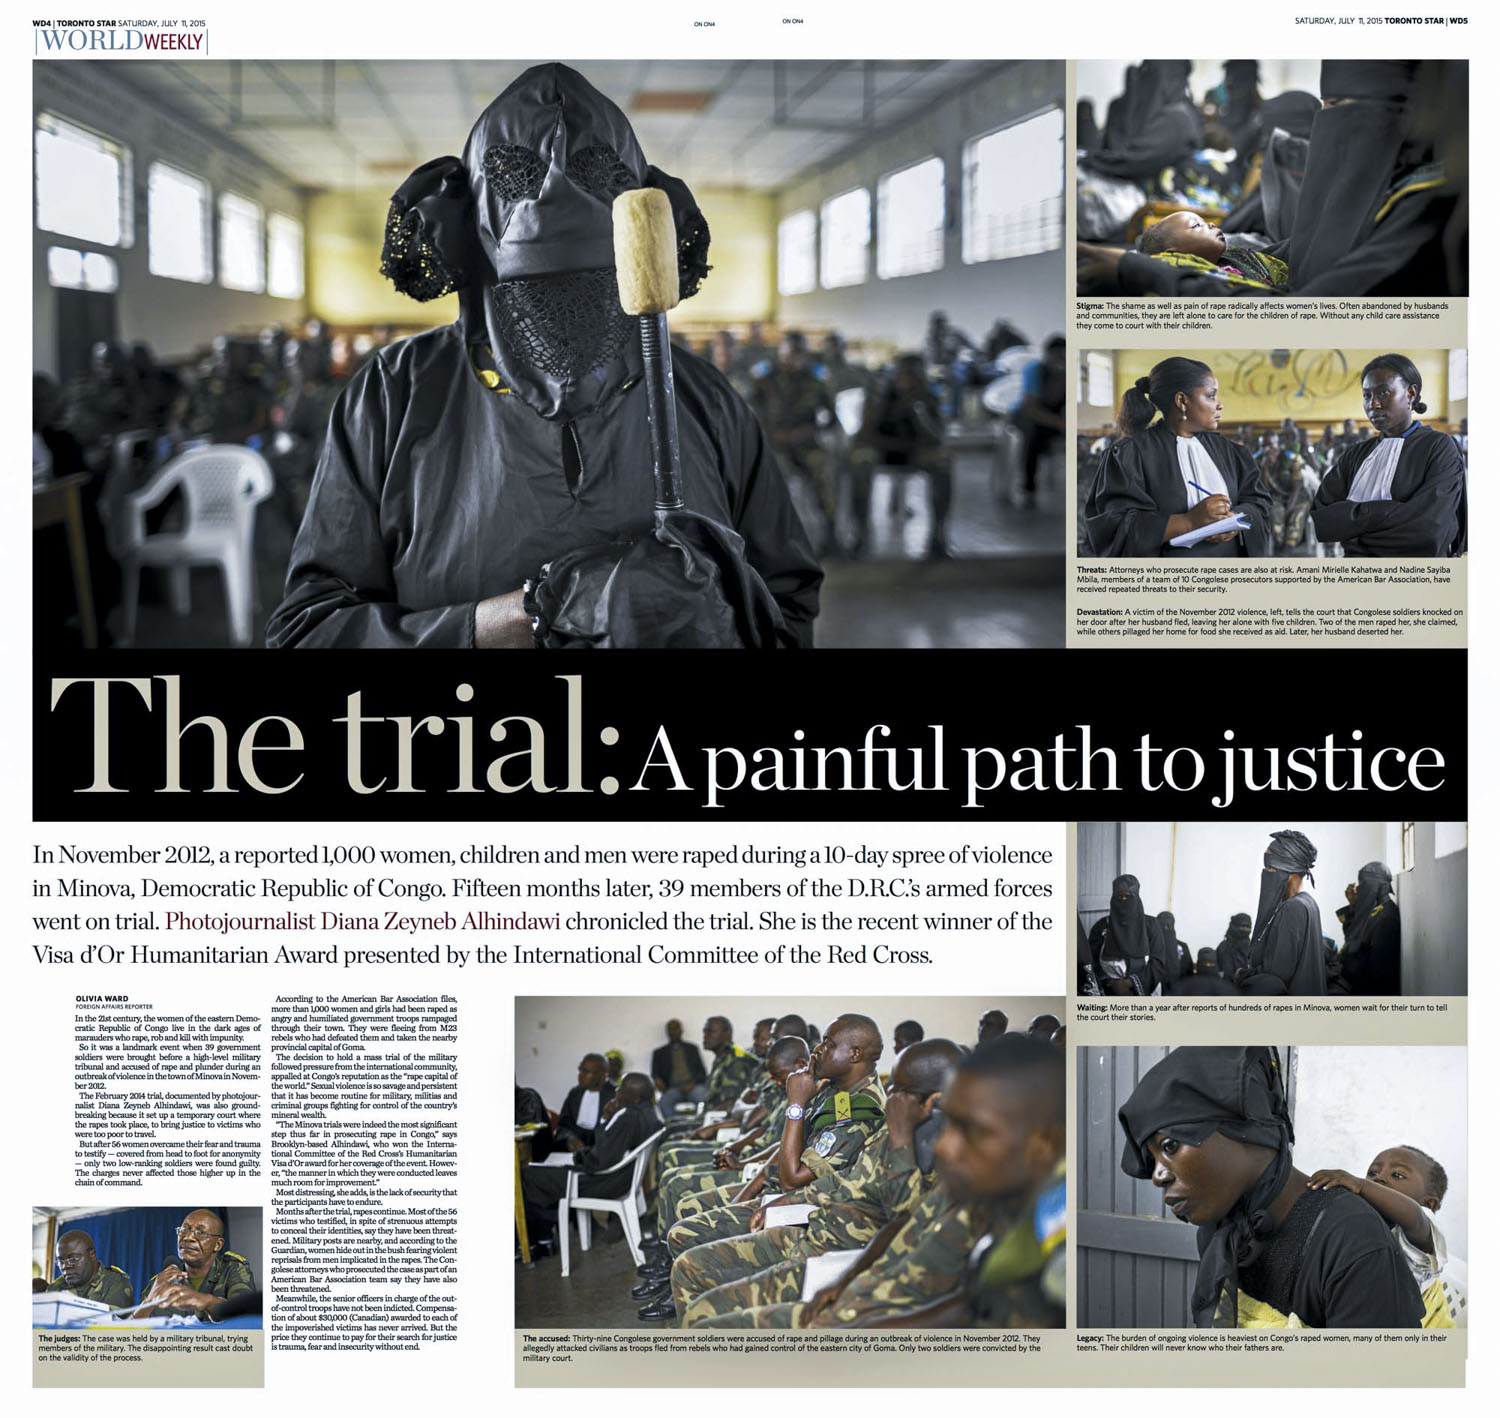 The trial: A painful path to justice | The Toronto Star, July 11 2015, pages WD4-5